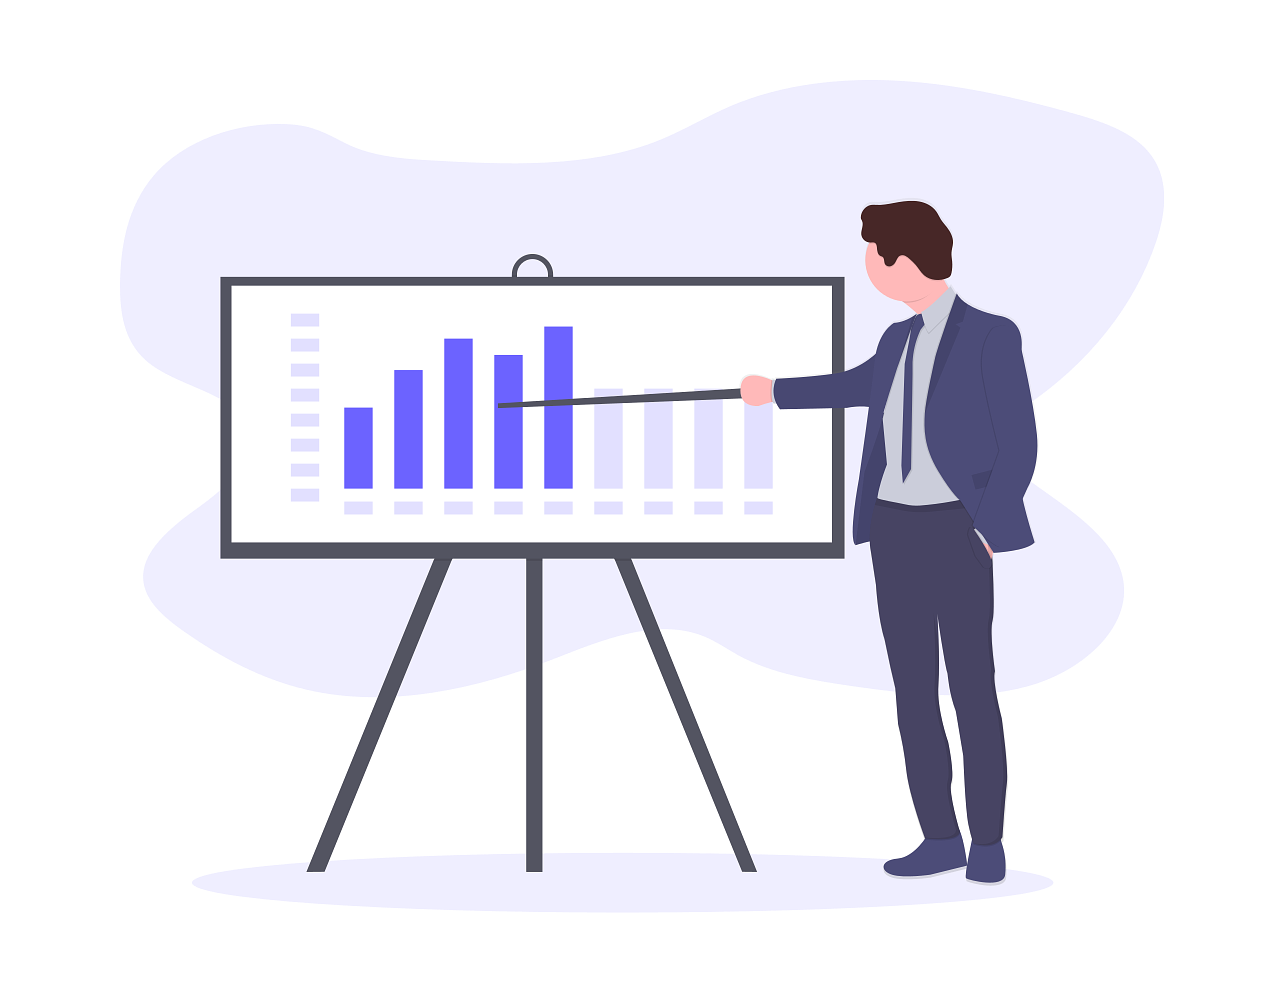 figure out why you want to launch a free trial. once you understand what your free trial goals are, you'll be able to define your approach to launching a free trial.